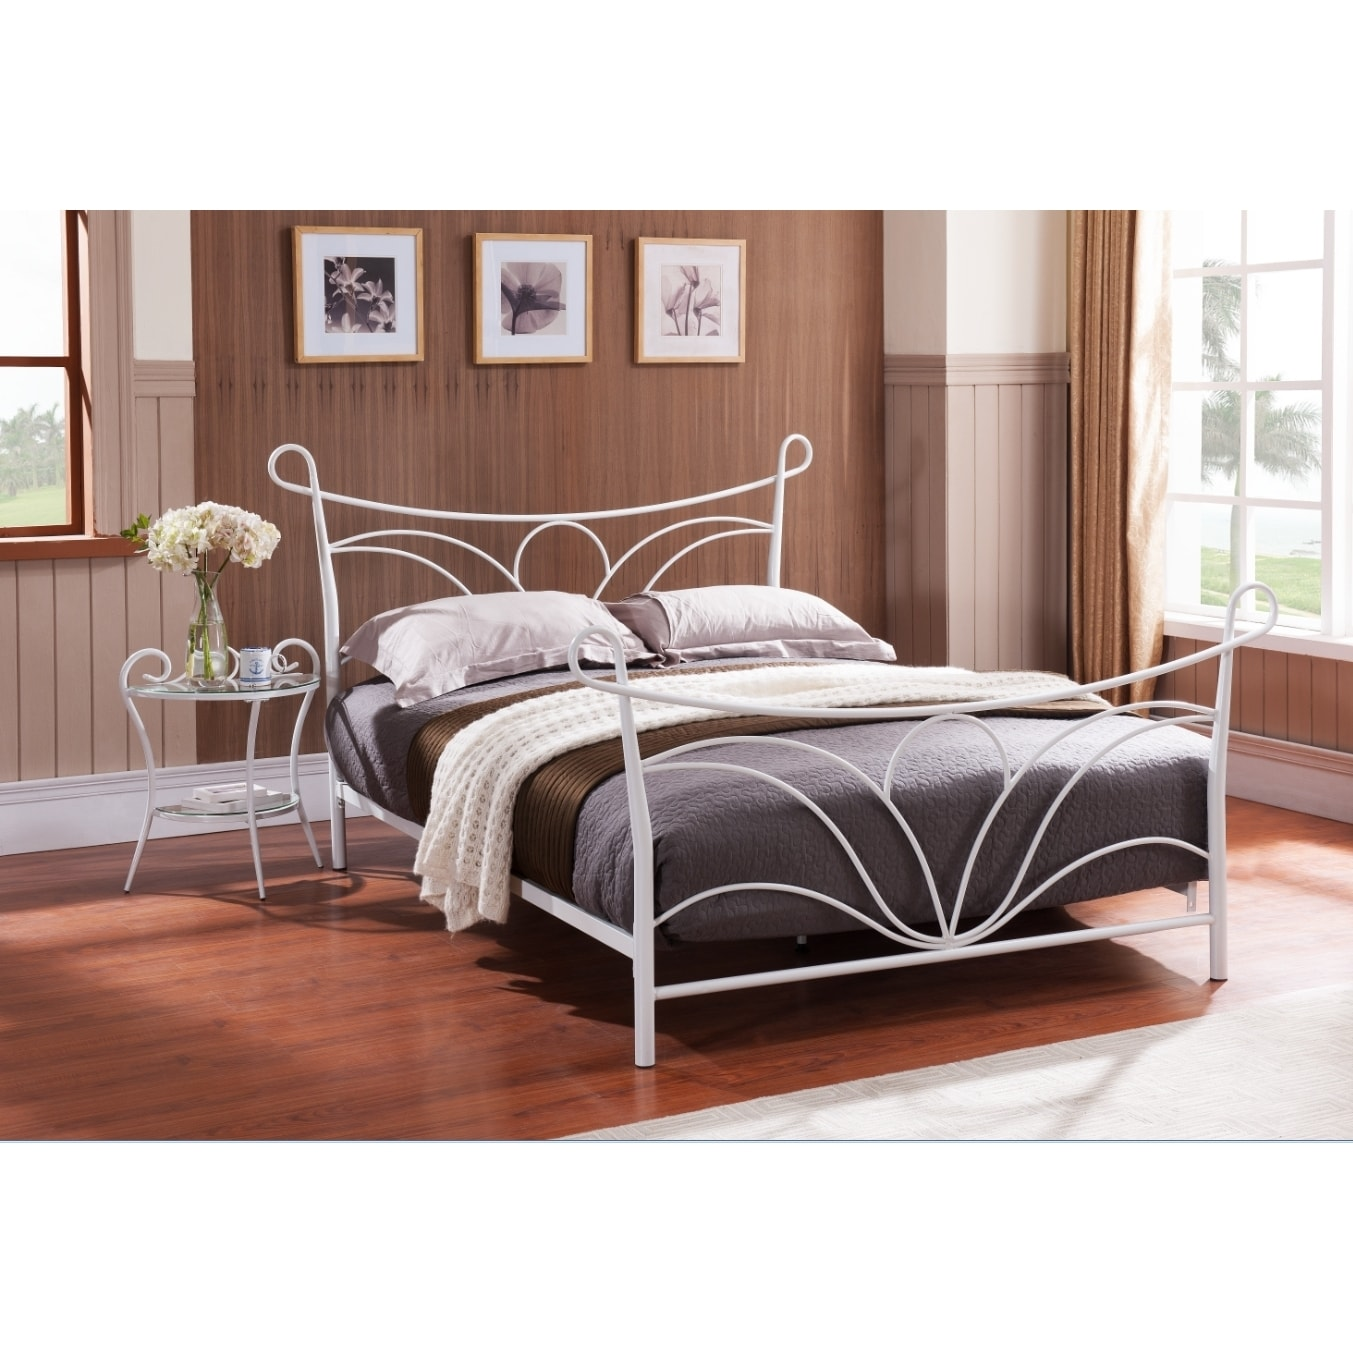 K&B BD69/1418 Queen-size Metal Bed With Headboard/Footboa...